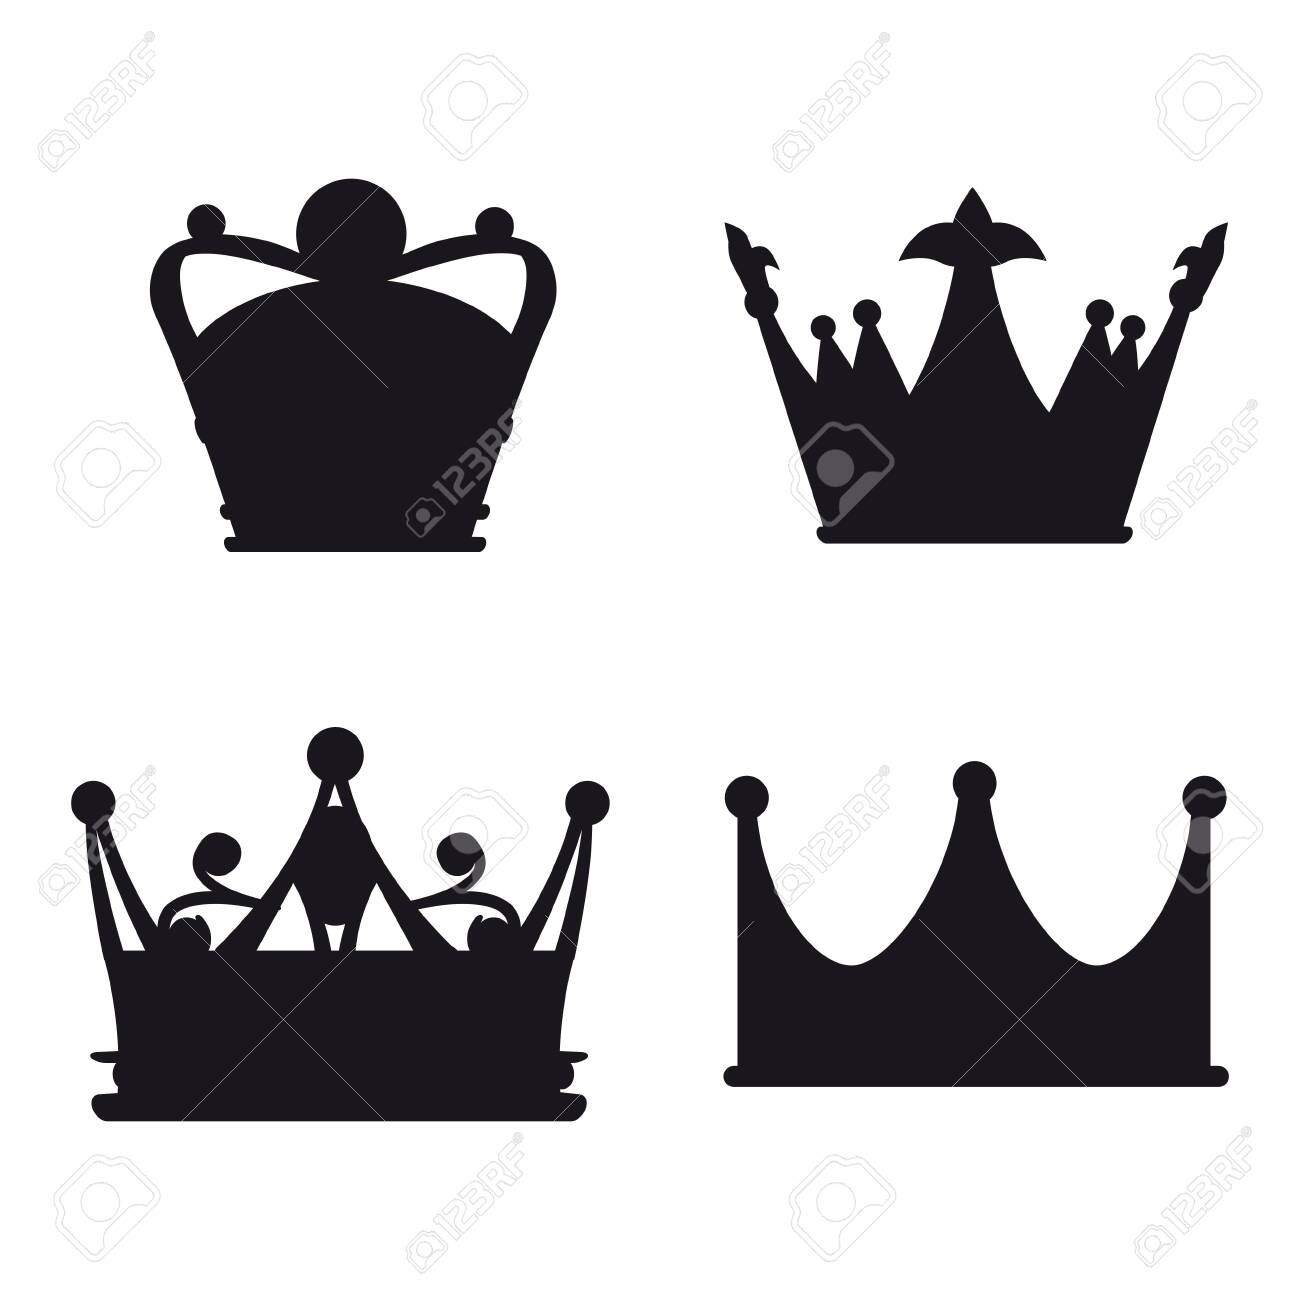 Set Crown Icon Royal, luxury symbol King, Queen. Vector illustration logo, app, UI isolated - 135009950